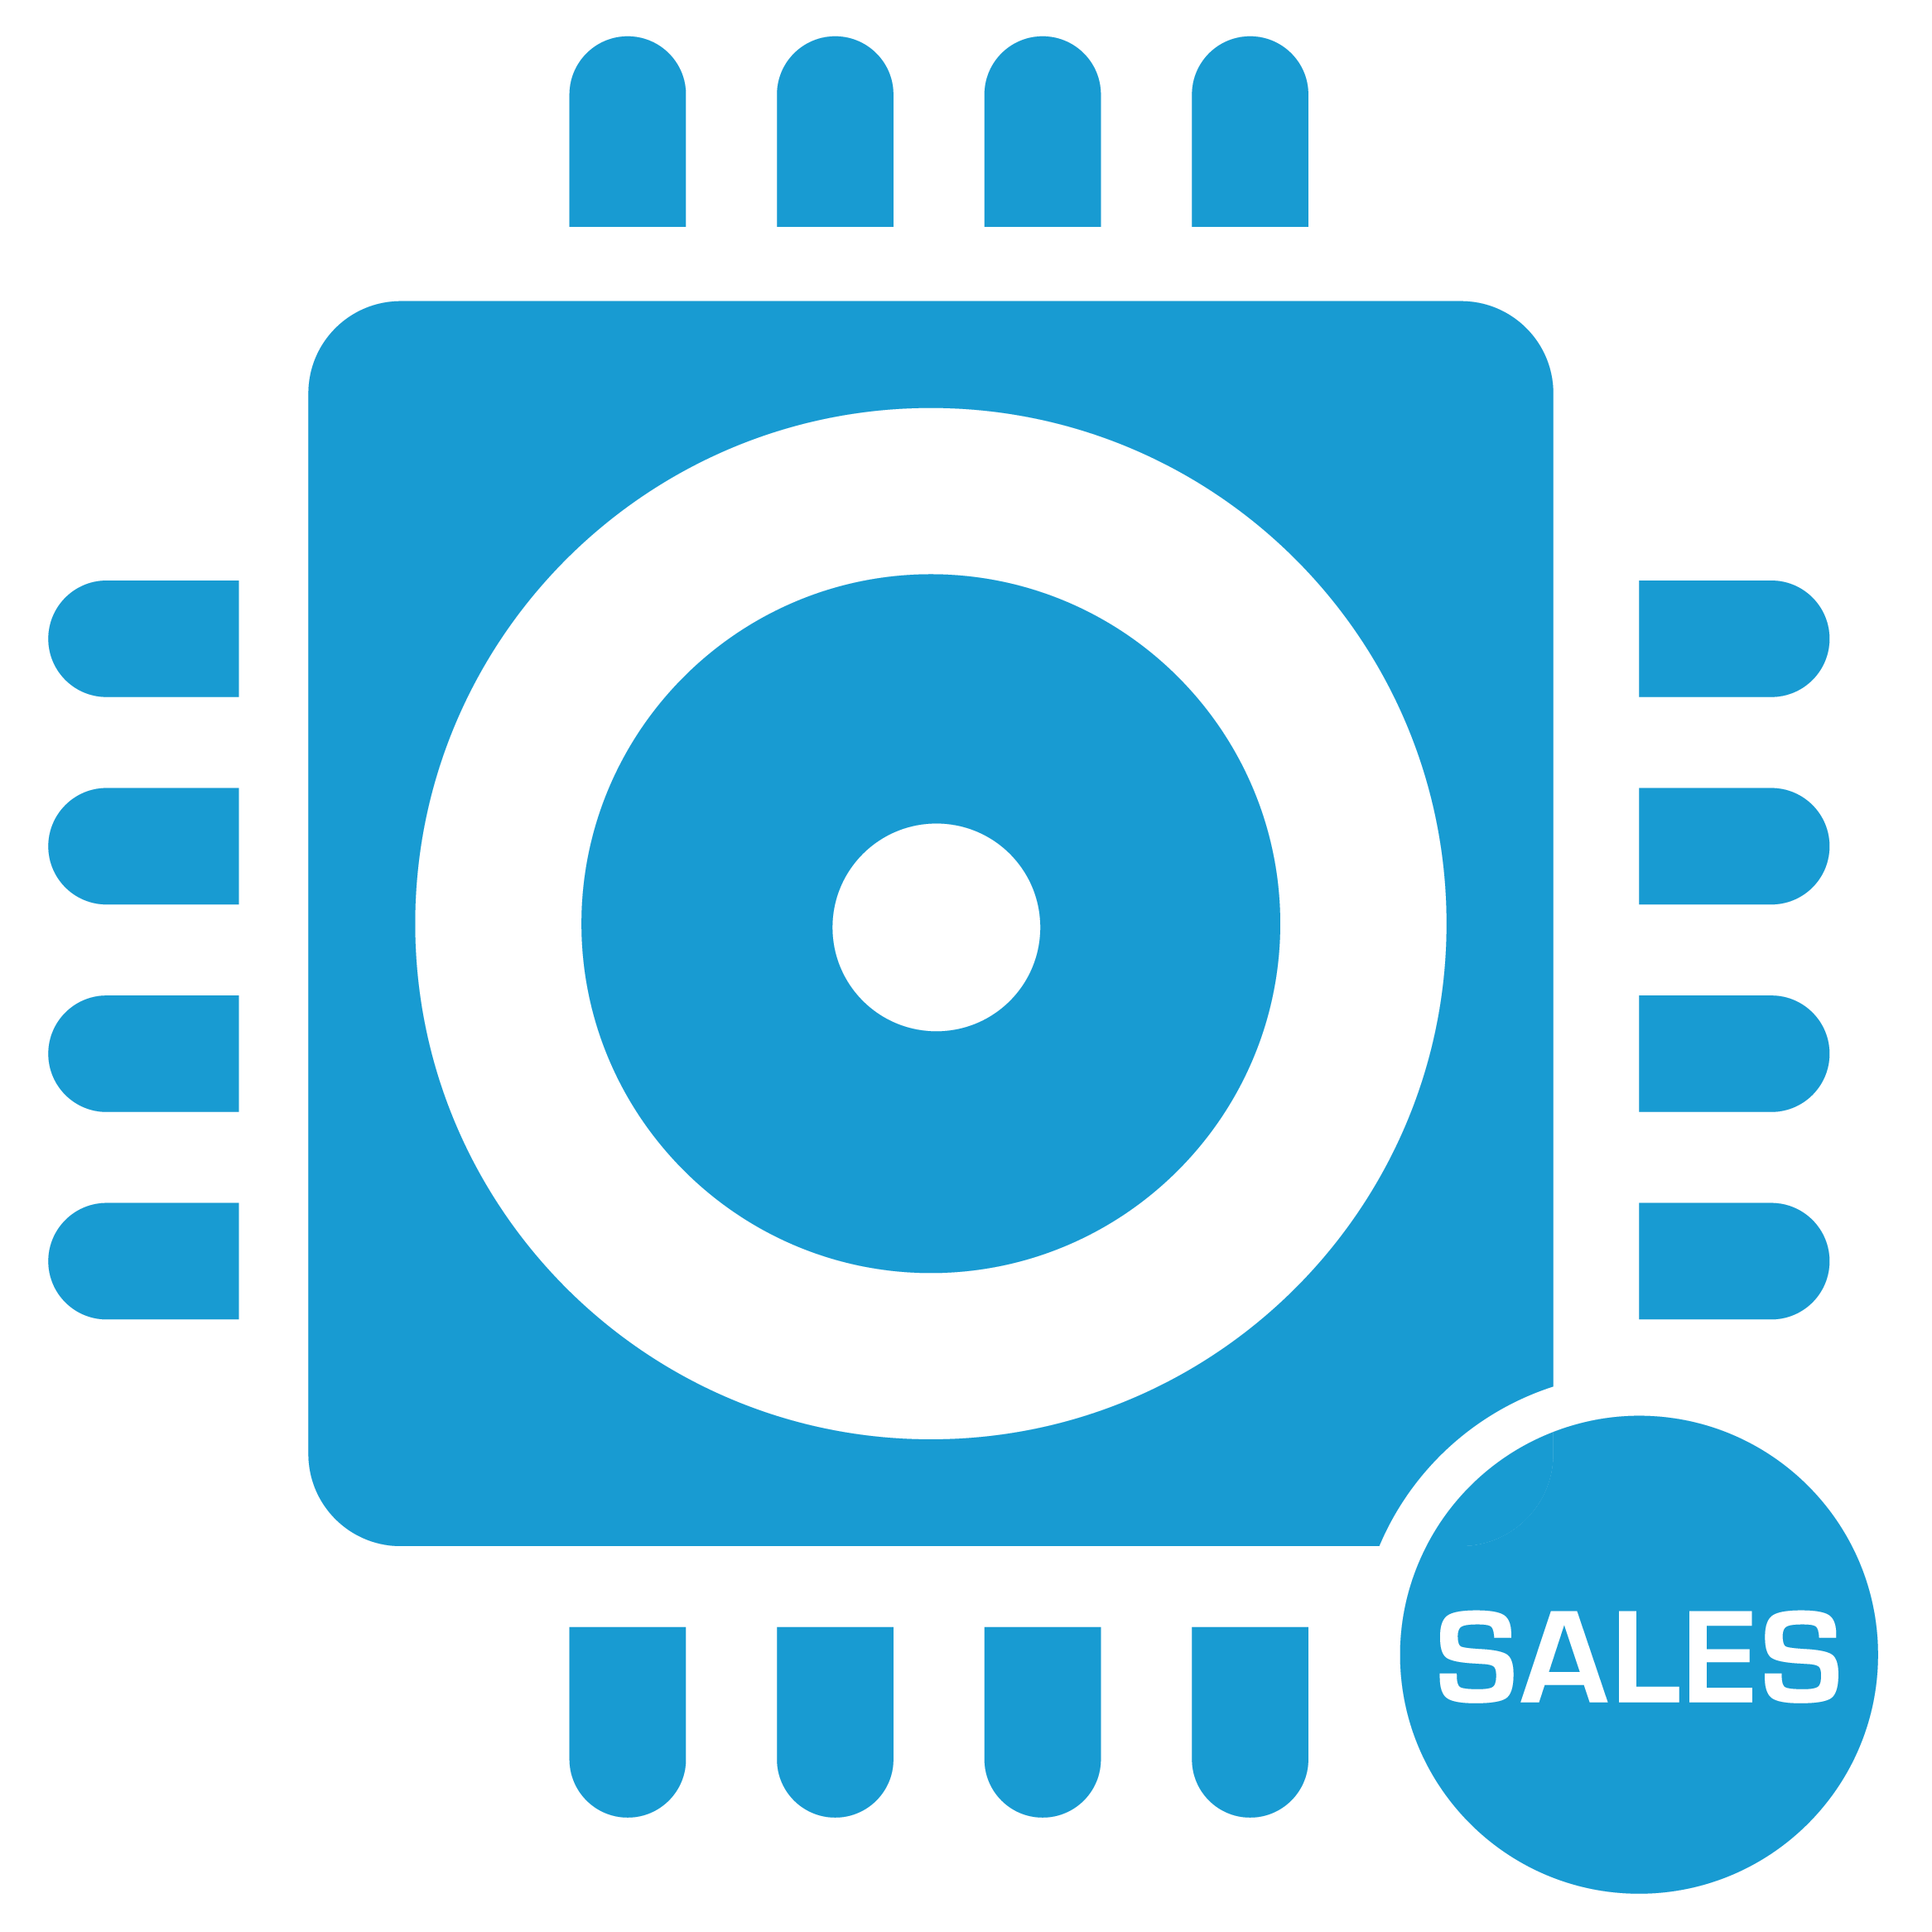 Hardware & Software Sales